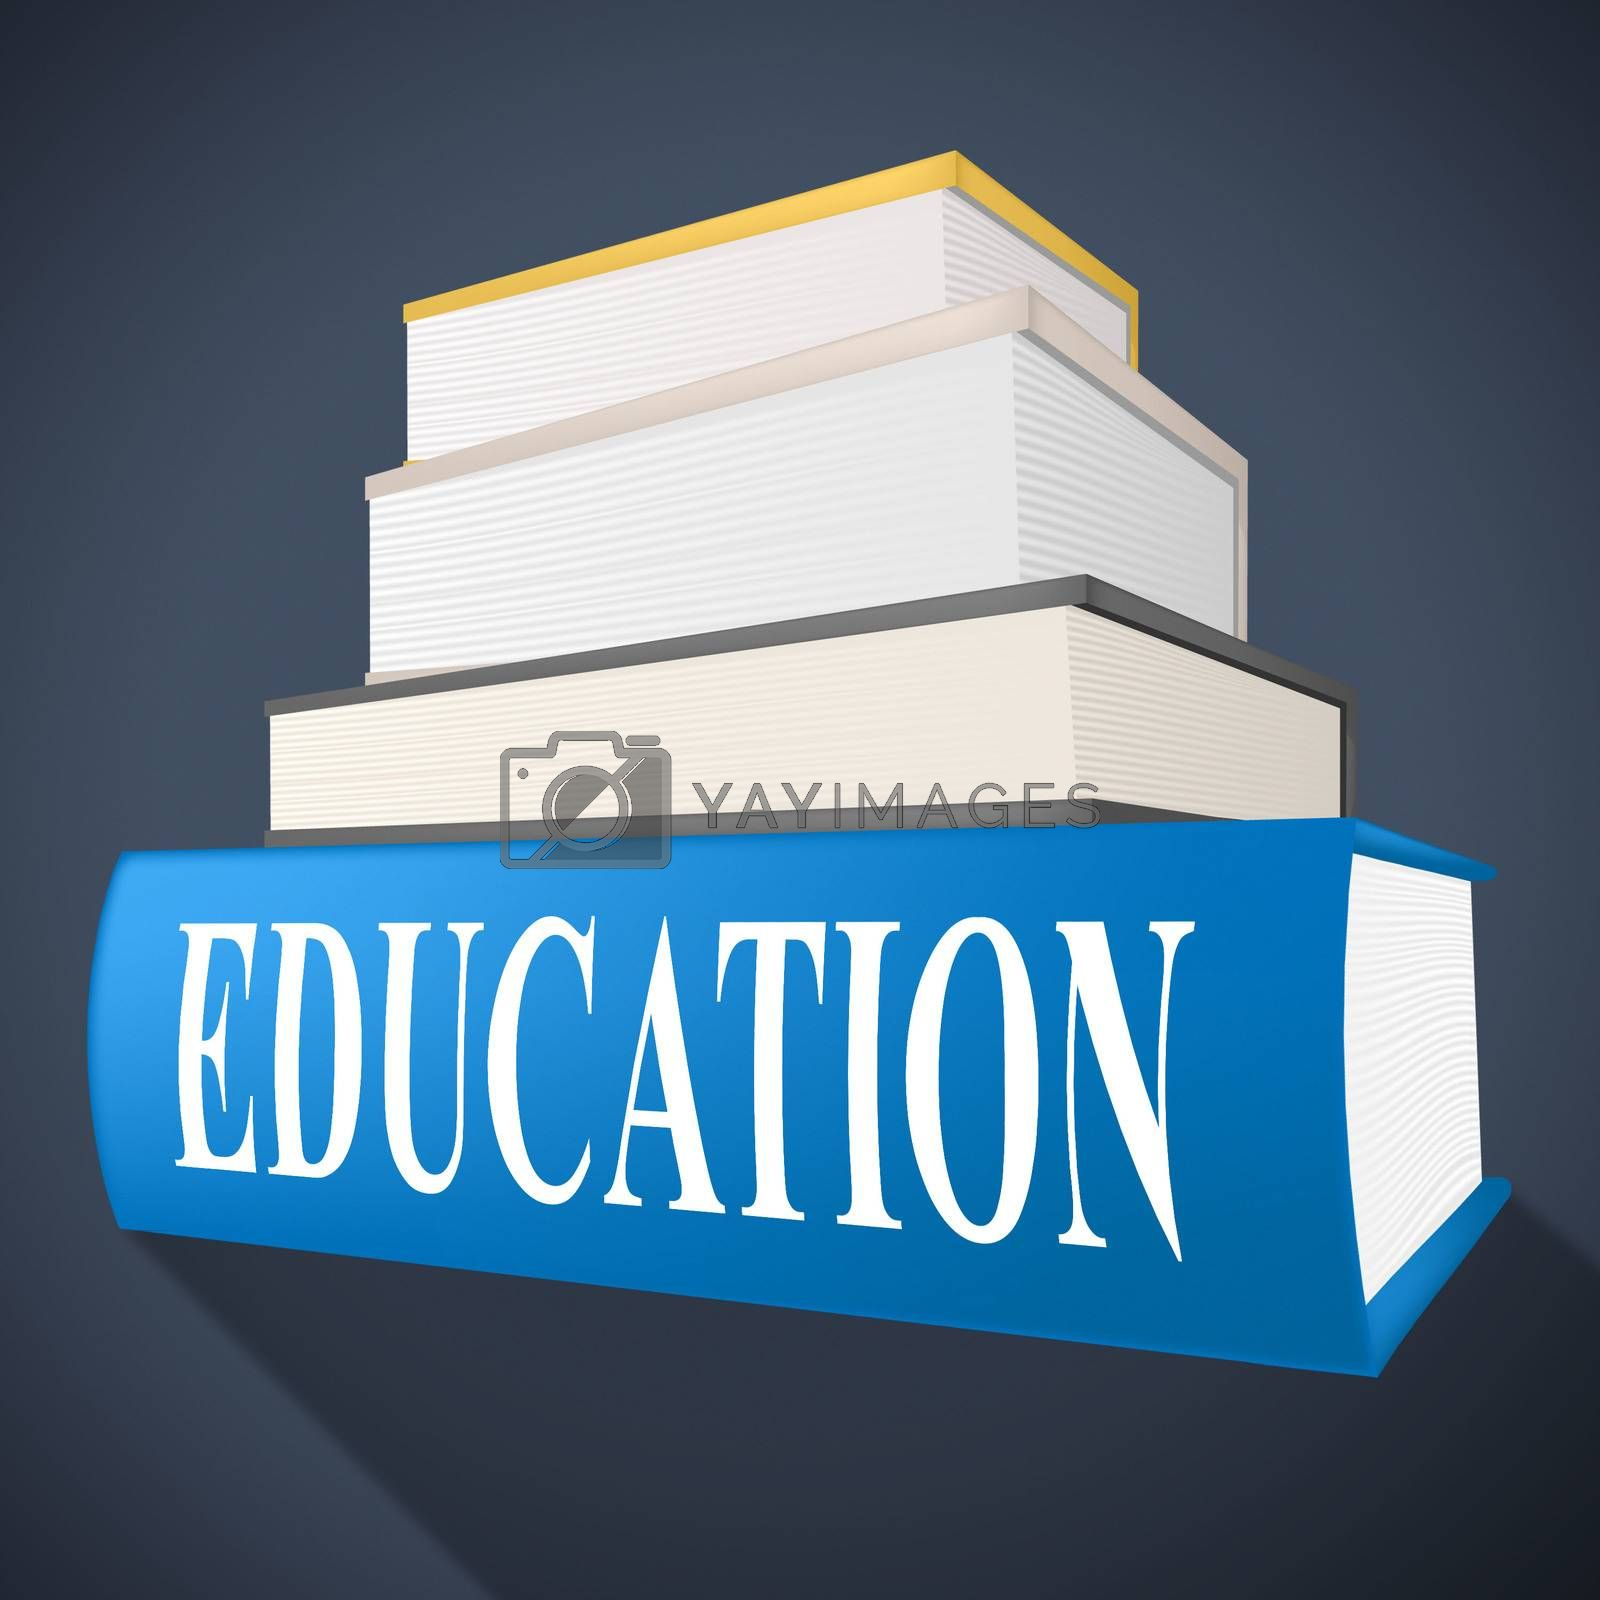 Education Book Represents Non-Fiction School And Educated by stuartmiles